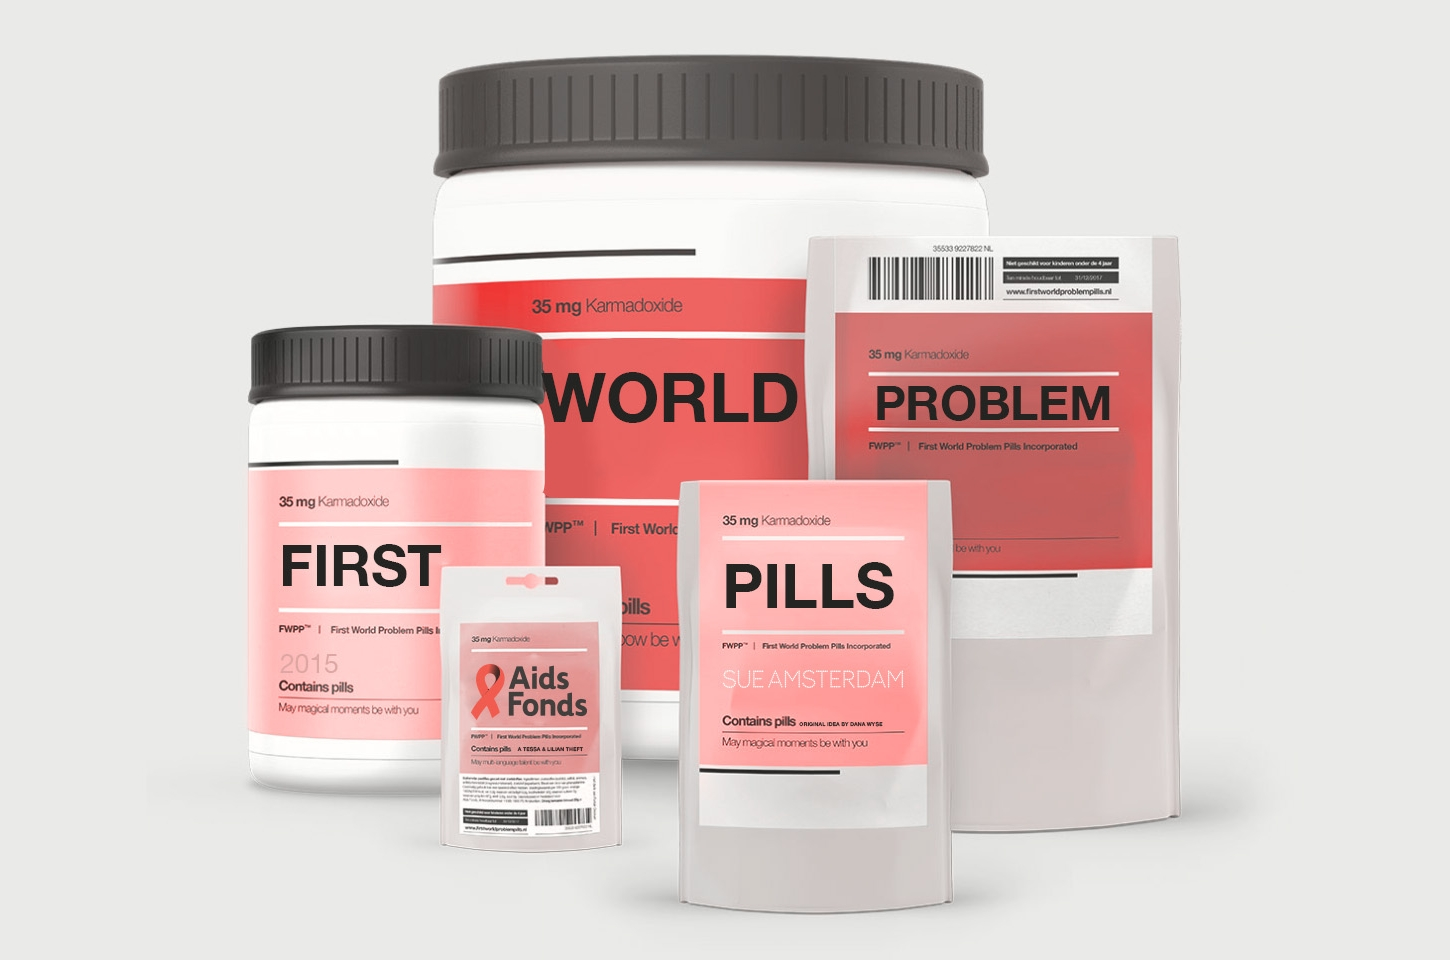 First WorldProblem💊Pills - Buy these quirky pills to solve your (first world) problem.Pay to give a patient in need his/her lifesaving medicine.Fundraiser for Aids Fonds - Sue Amsterdam 2015